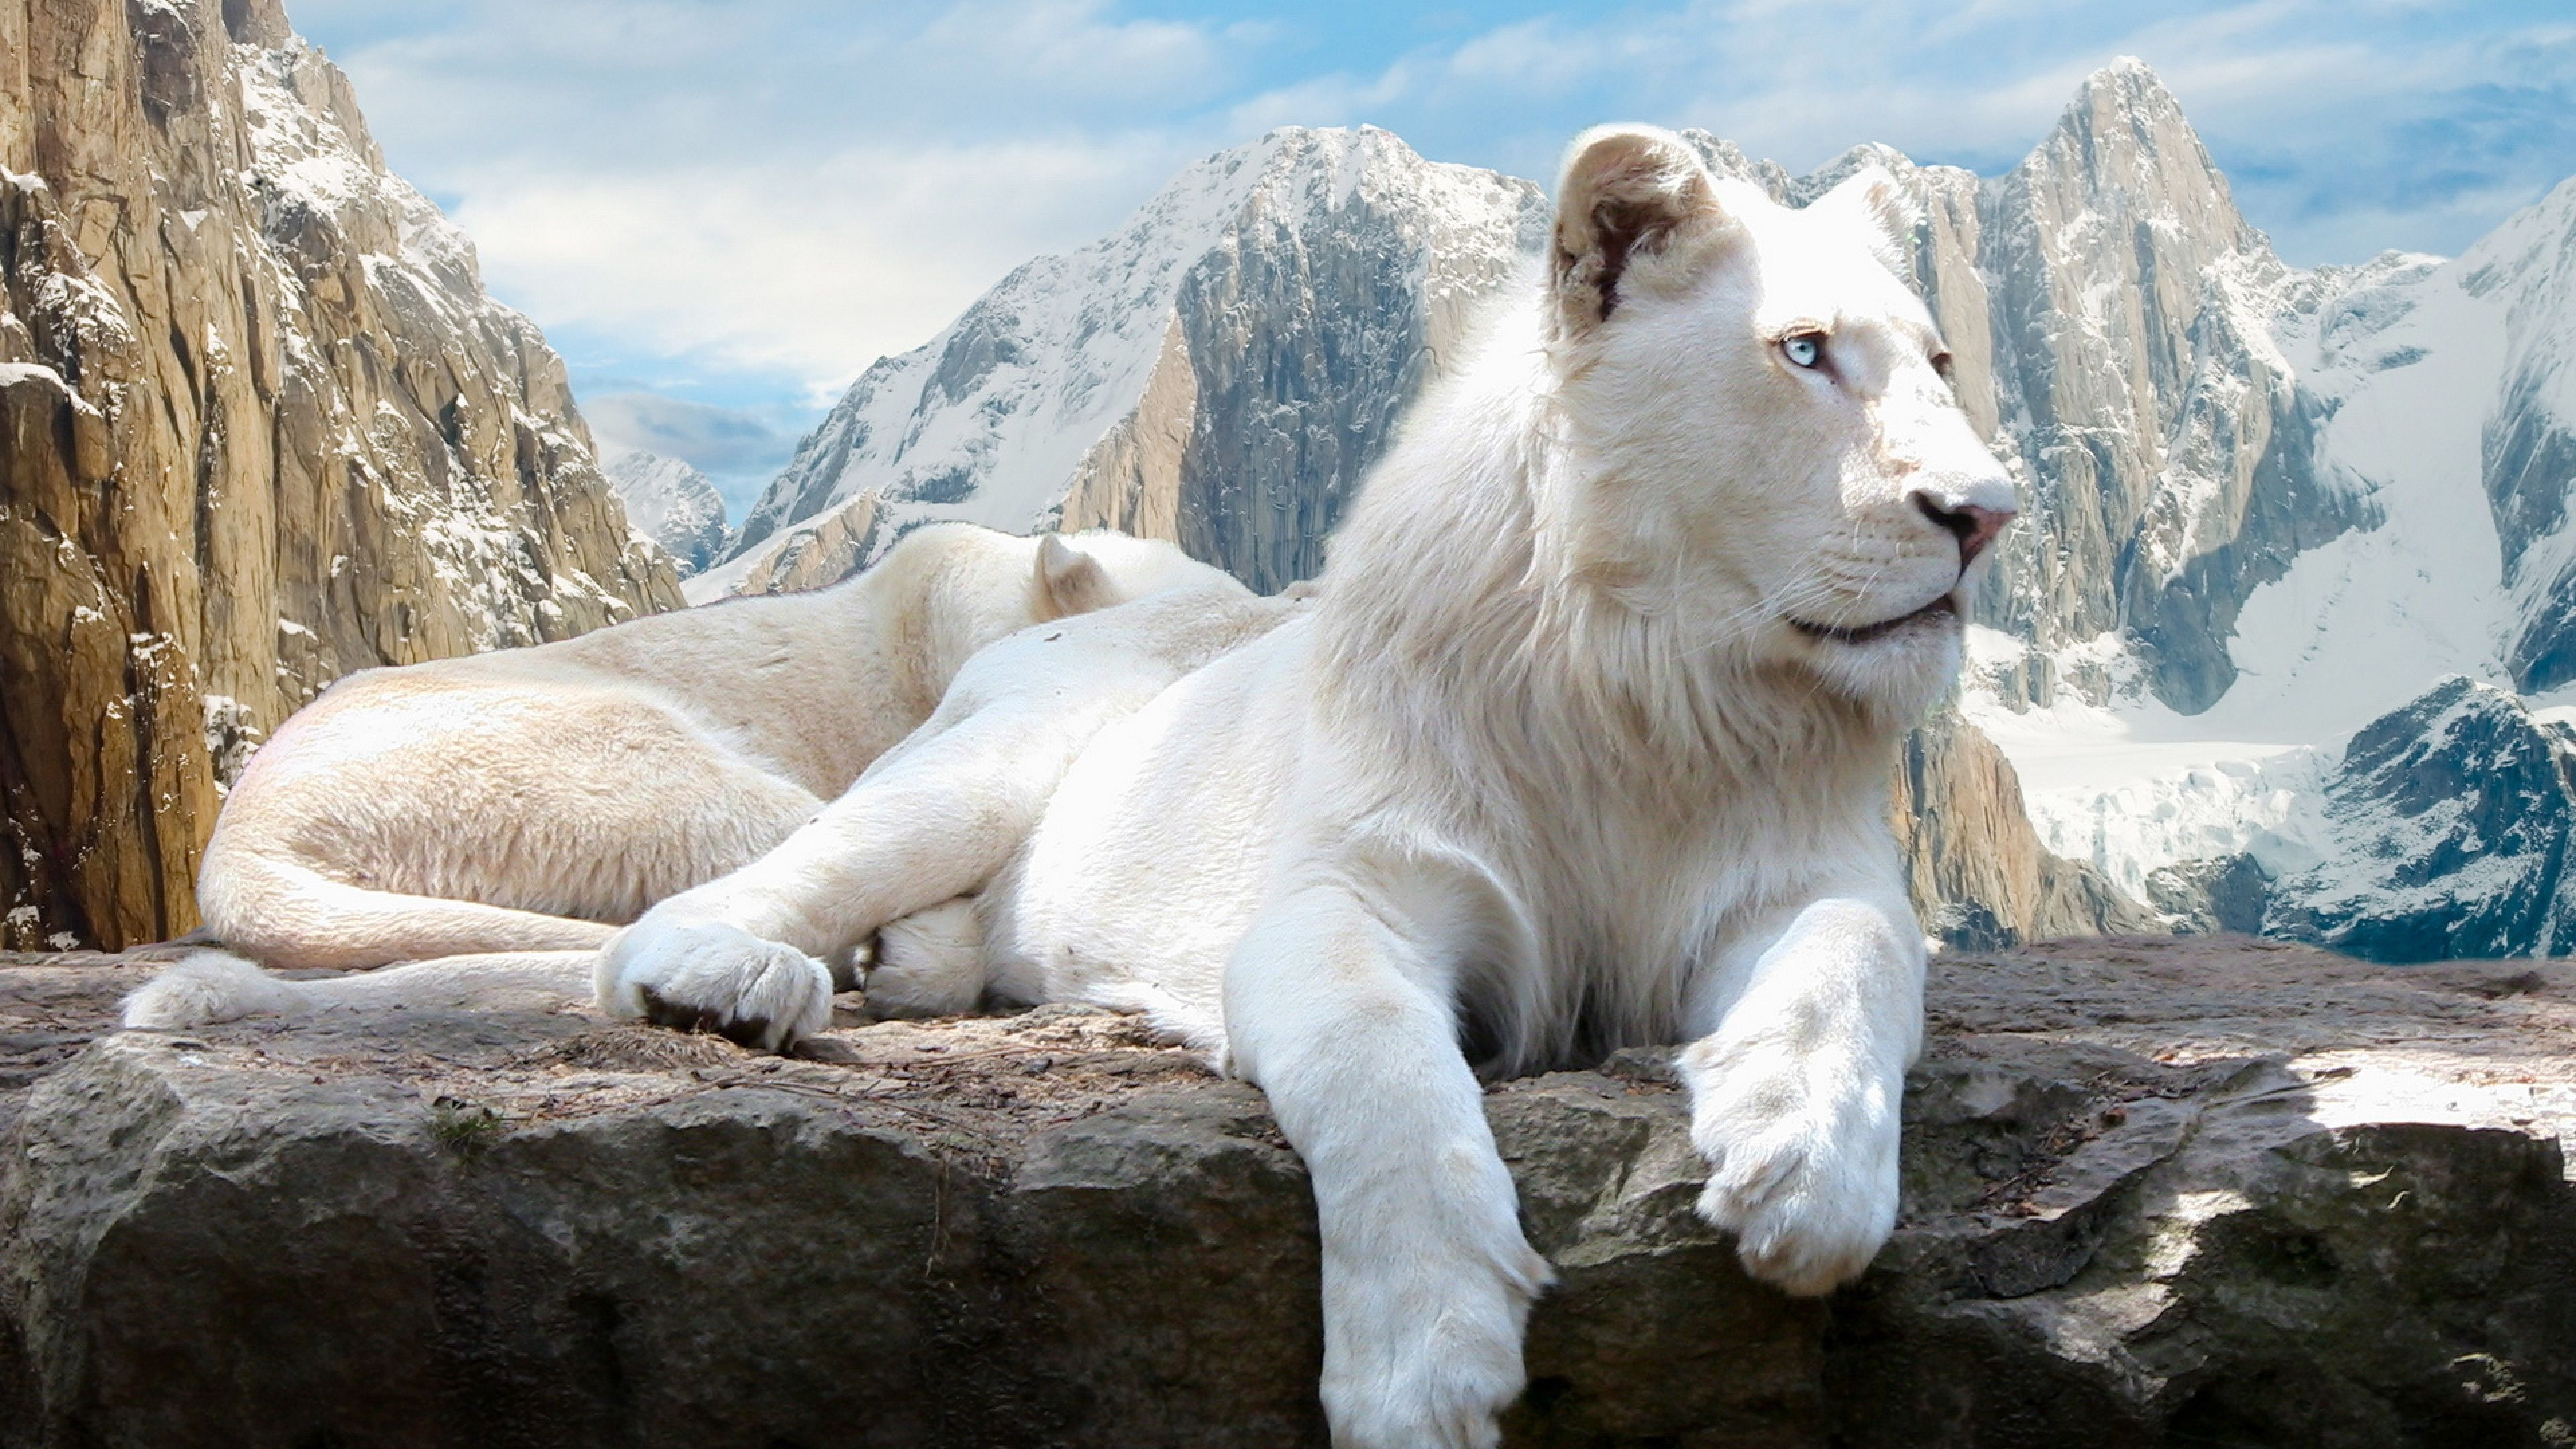 4k Ultra Hd Lion Wallpapers Hd Desktop Backgrounds 3840x2160 Albino Lion White Lion Animals Beautiful